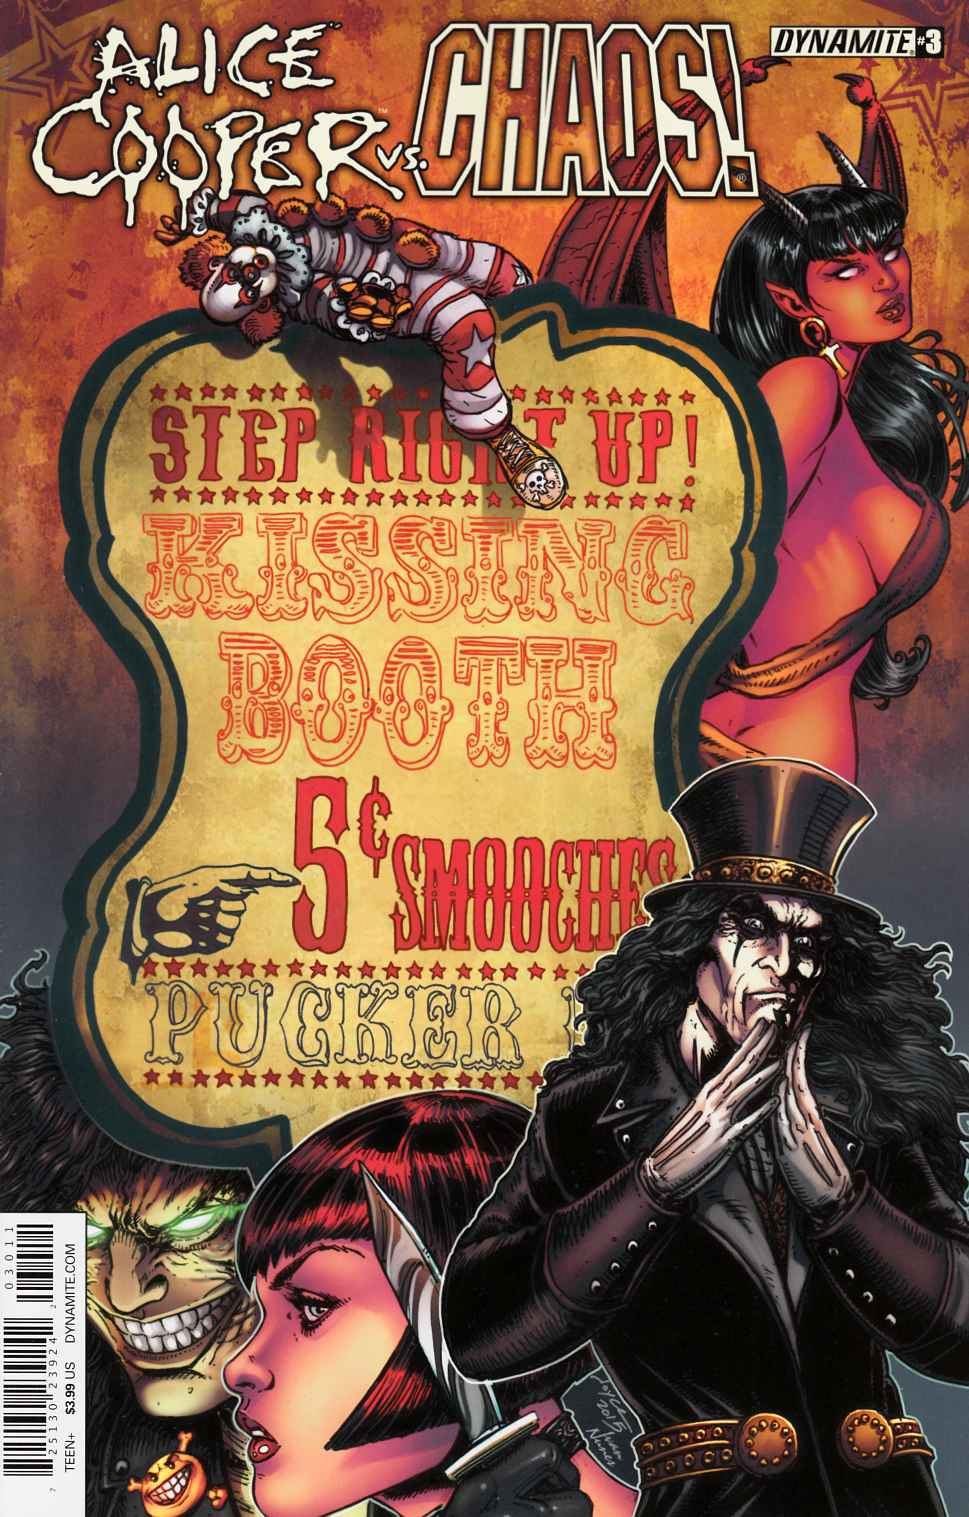 Alice Cooper Vs Chaos #3 Cover A- Chin LARGE